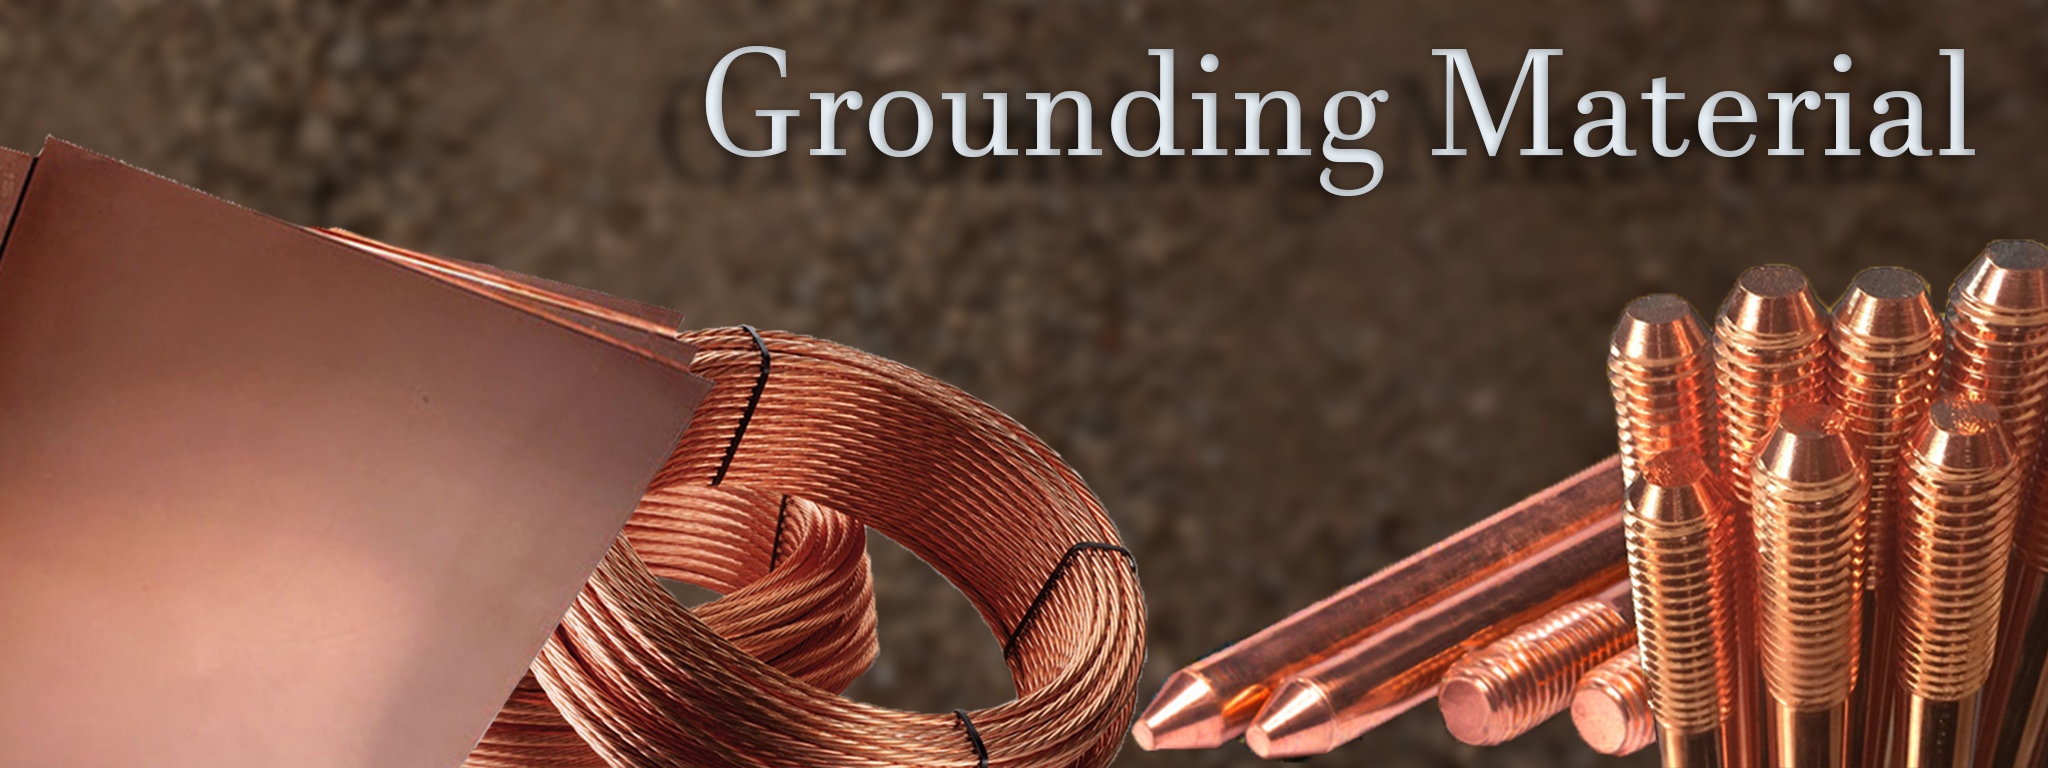 Grounding-material, penangkal-petir, penyalur-petir, anti-petir, penangkal-petir-electrostatic, elektrostatis, anti-petir-flash-vectron, anti-petir, evo-ranklin, grounding-system,